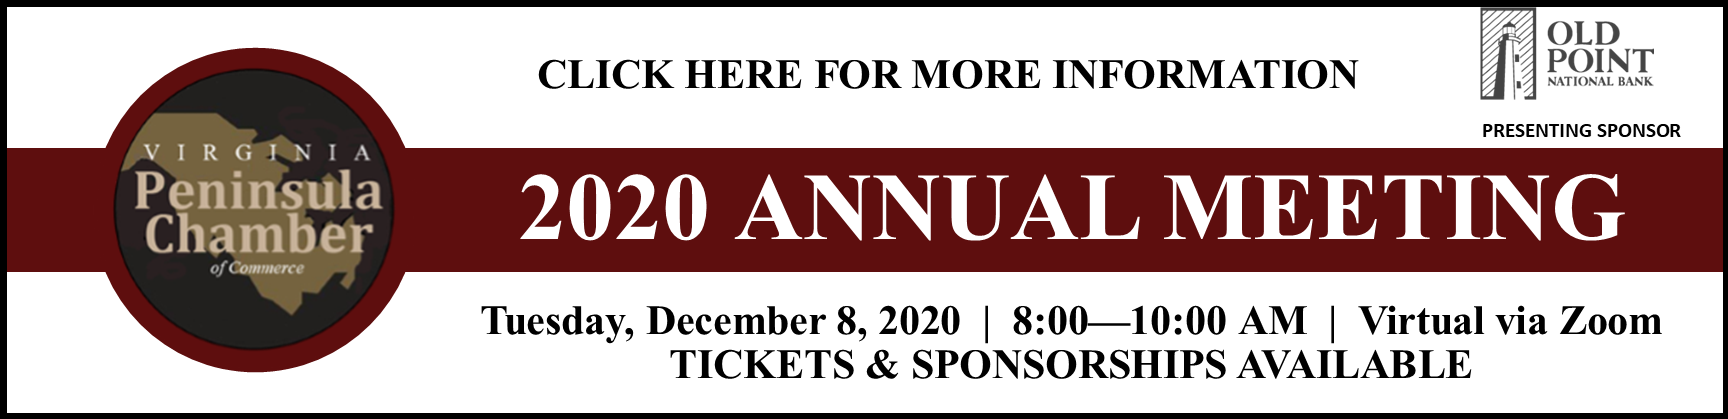 2020-Website-Banner-Templates-(ANNUAL-MEETING)-presenting-sponsor(1).png